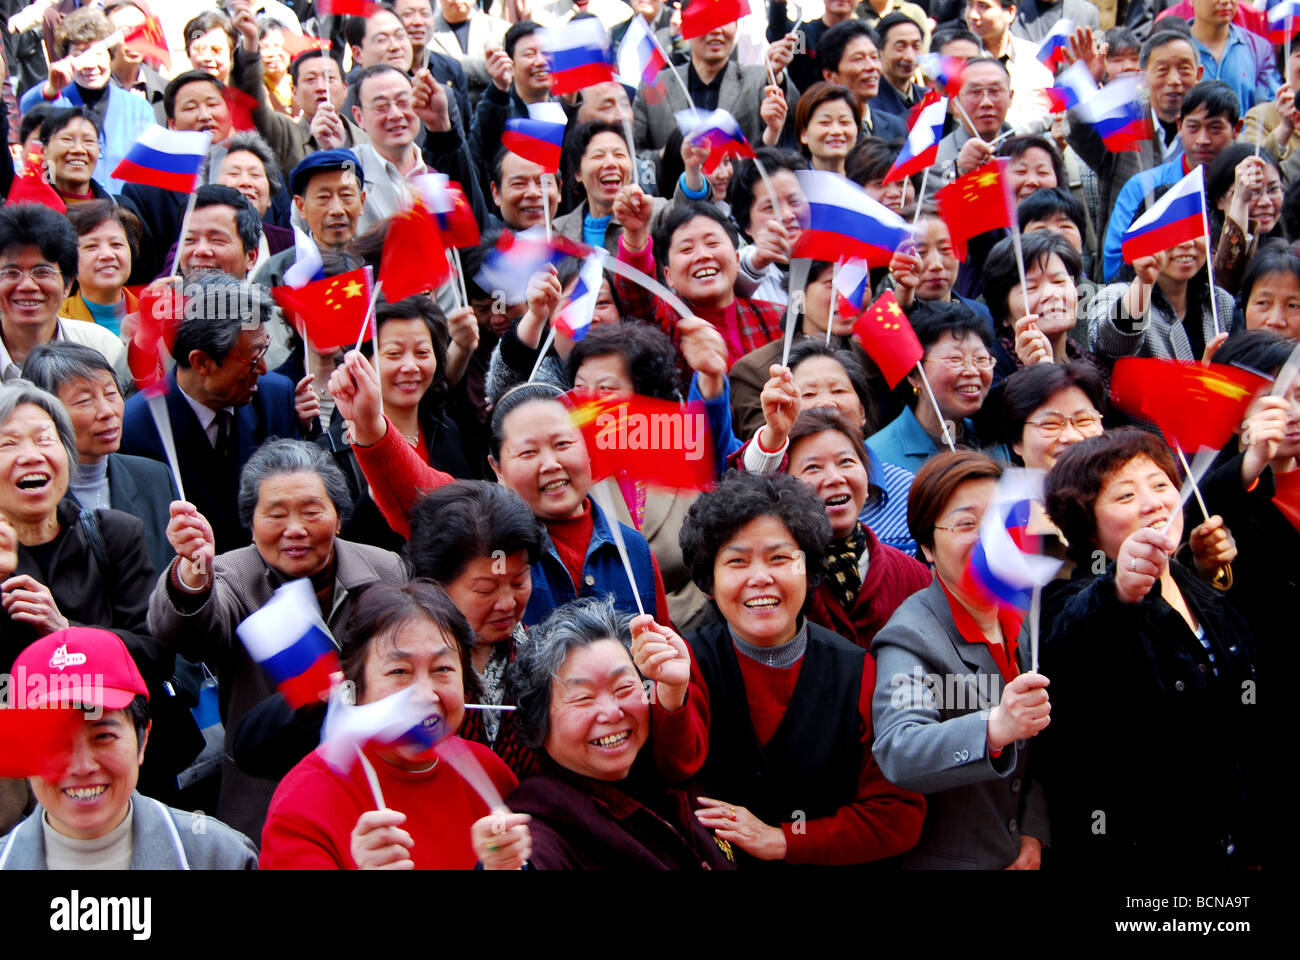 chinese people waving flags of russia and china shanghai china